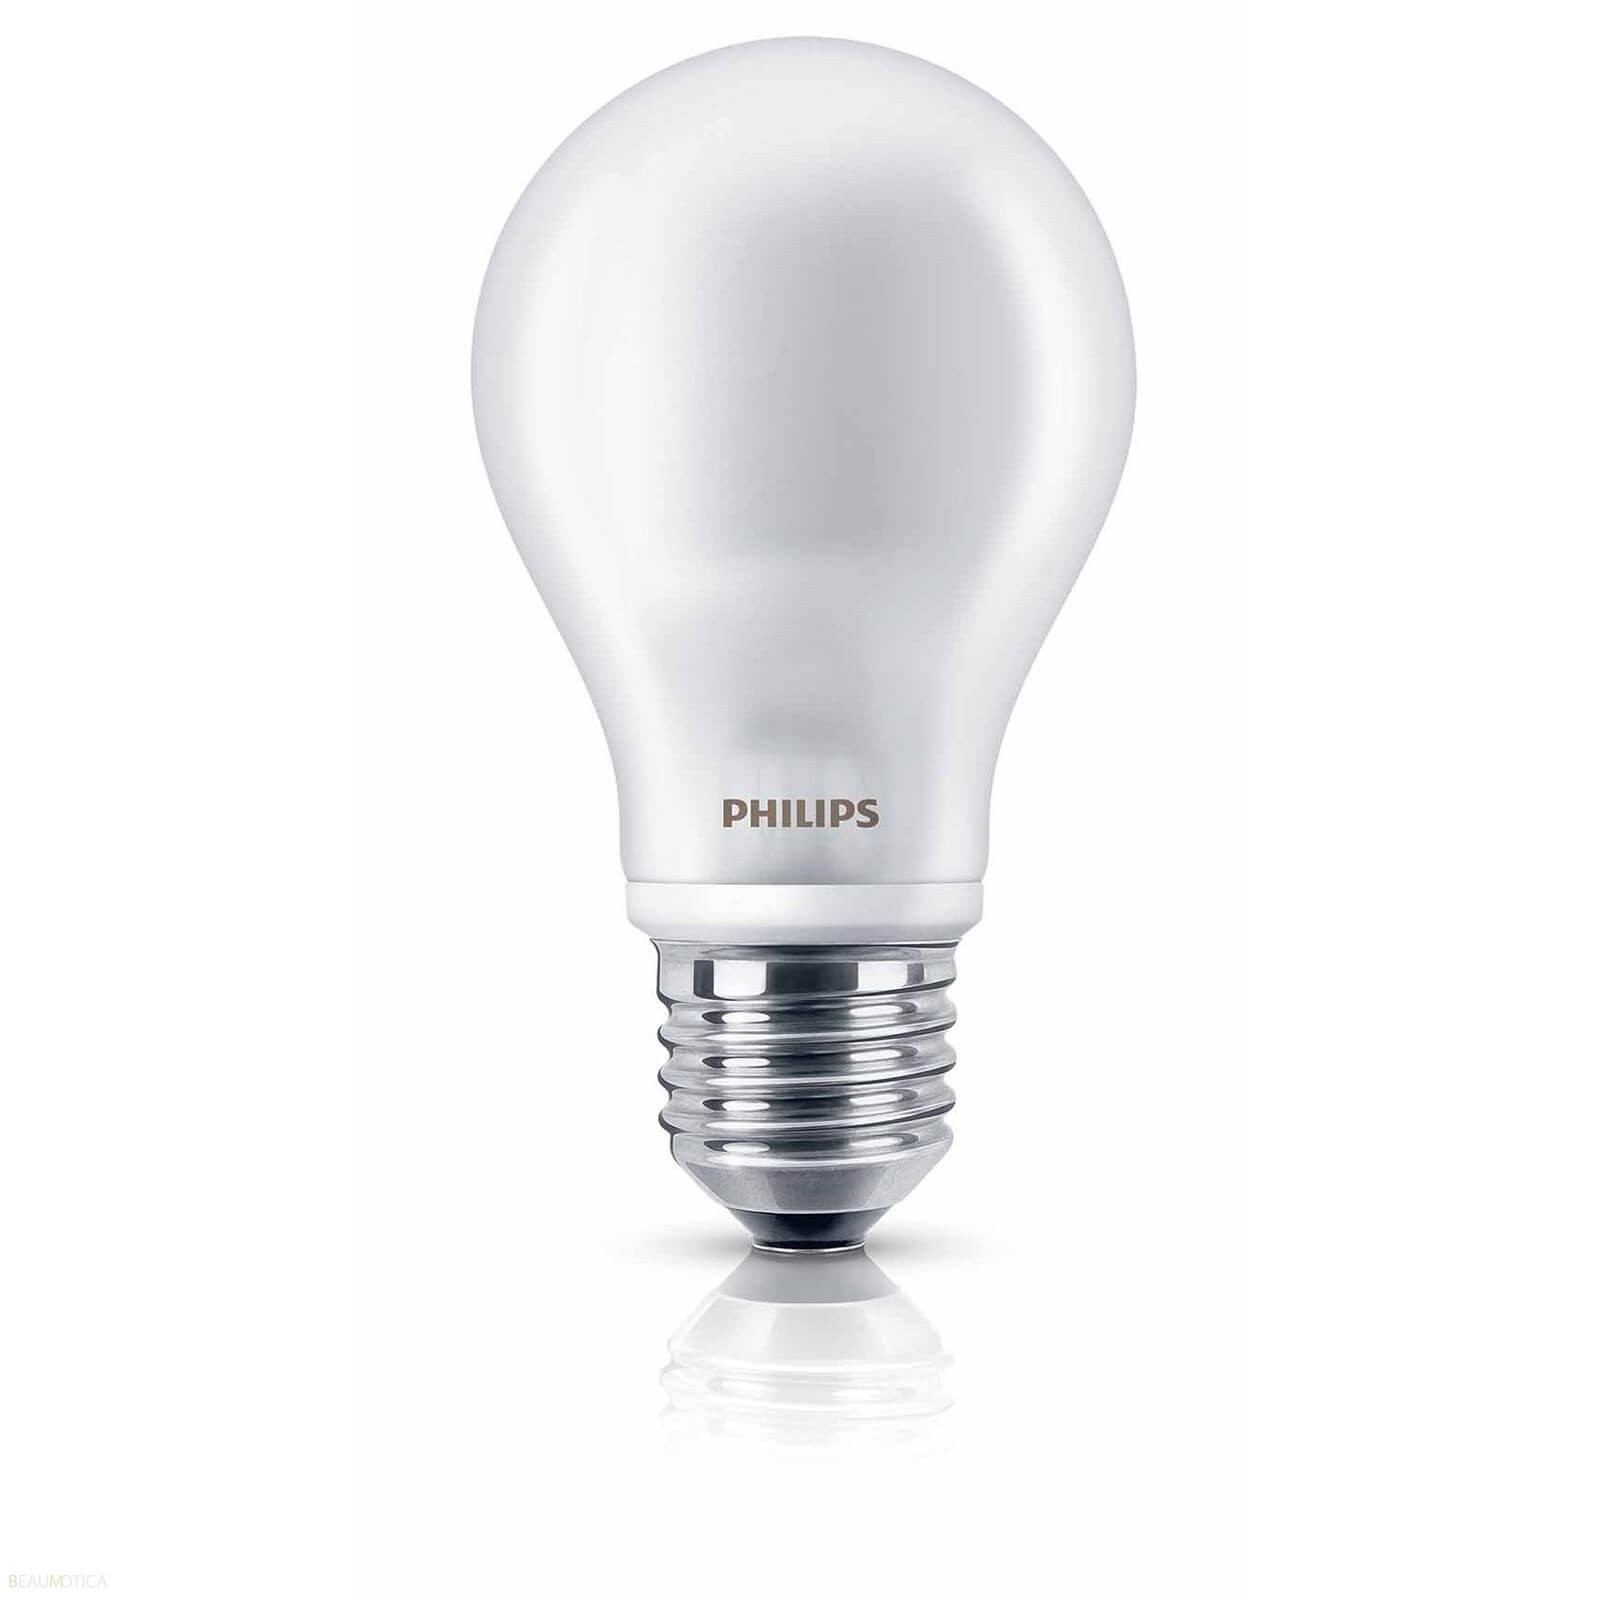 Philips led lampen e27 grote fitting philips led lampen philips led lamp classic 40w e27 parisarafo Images